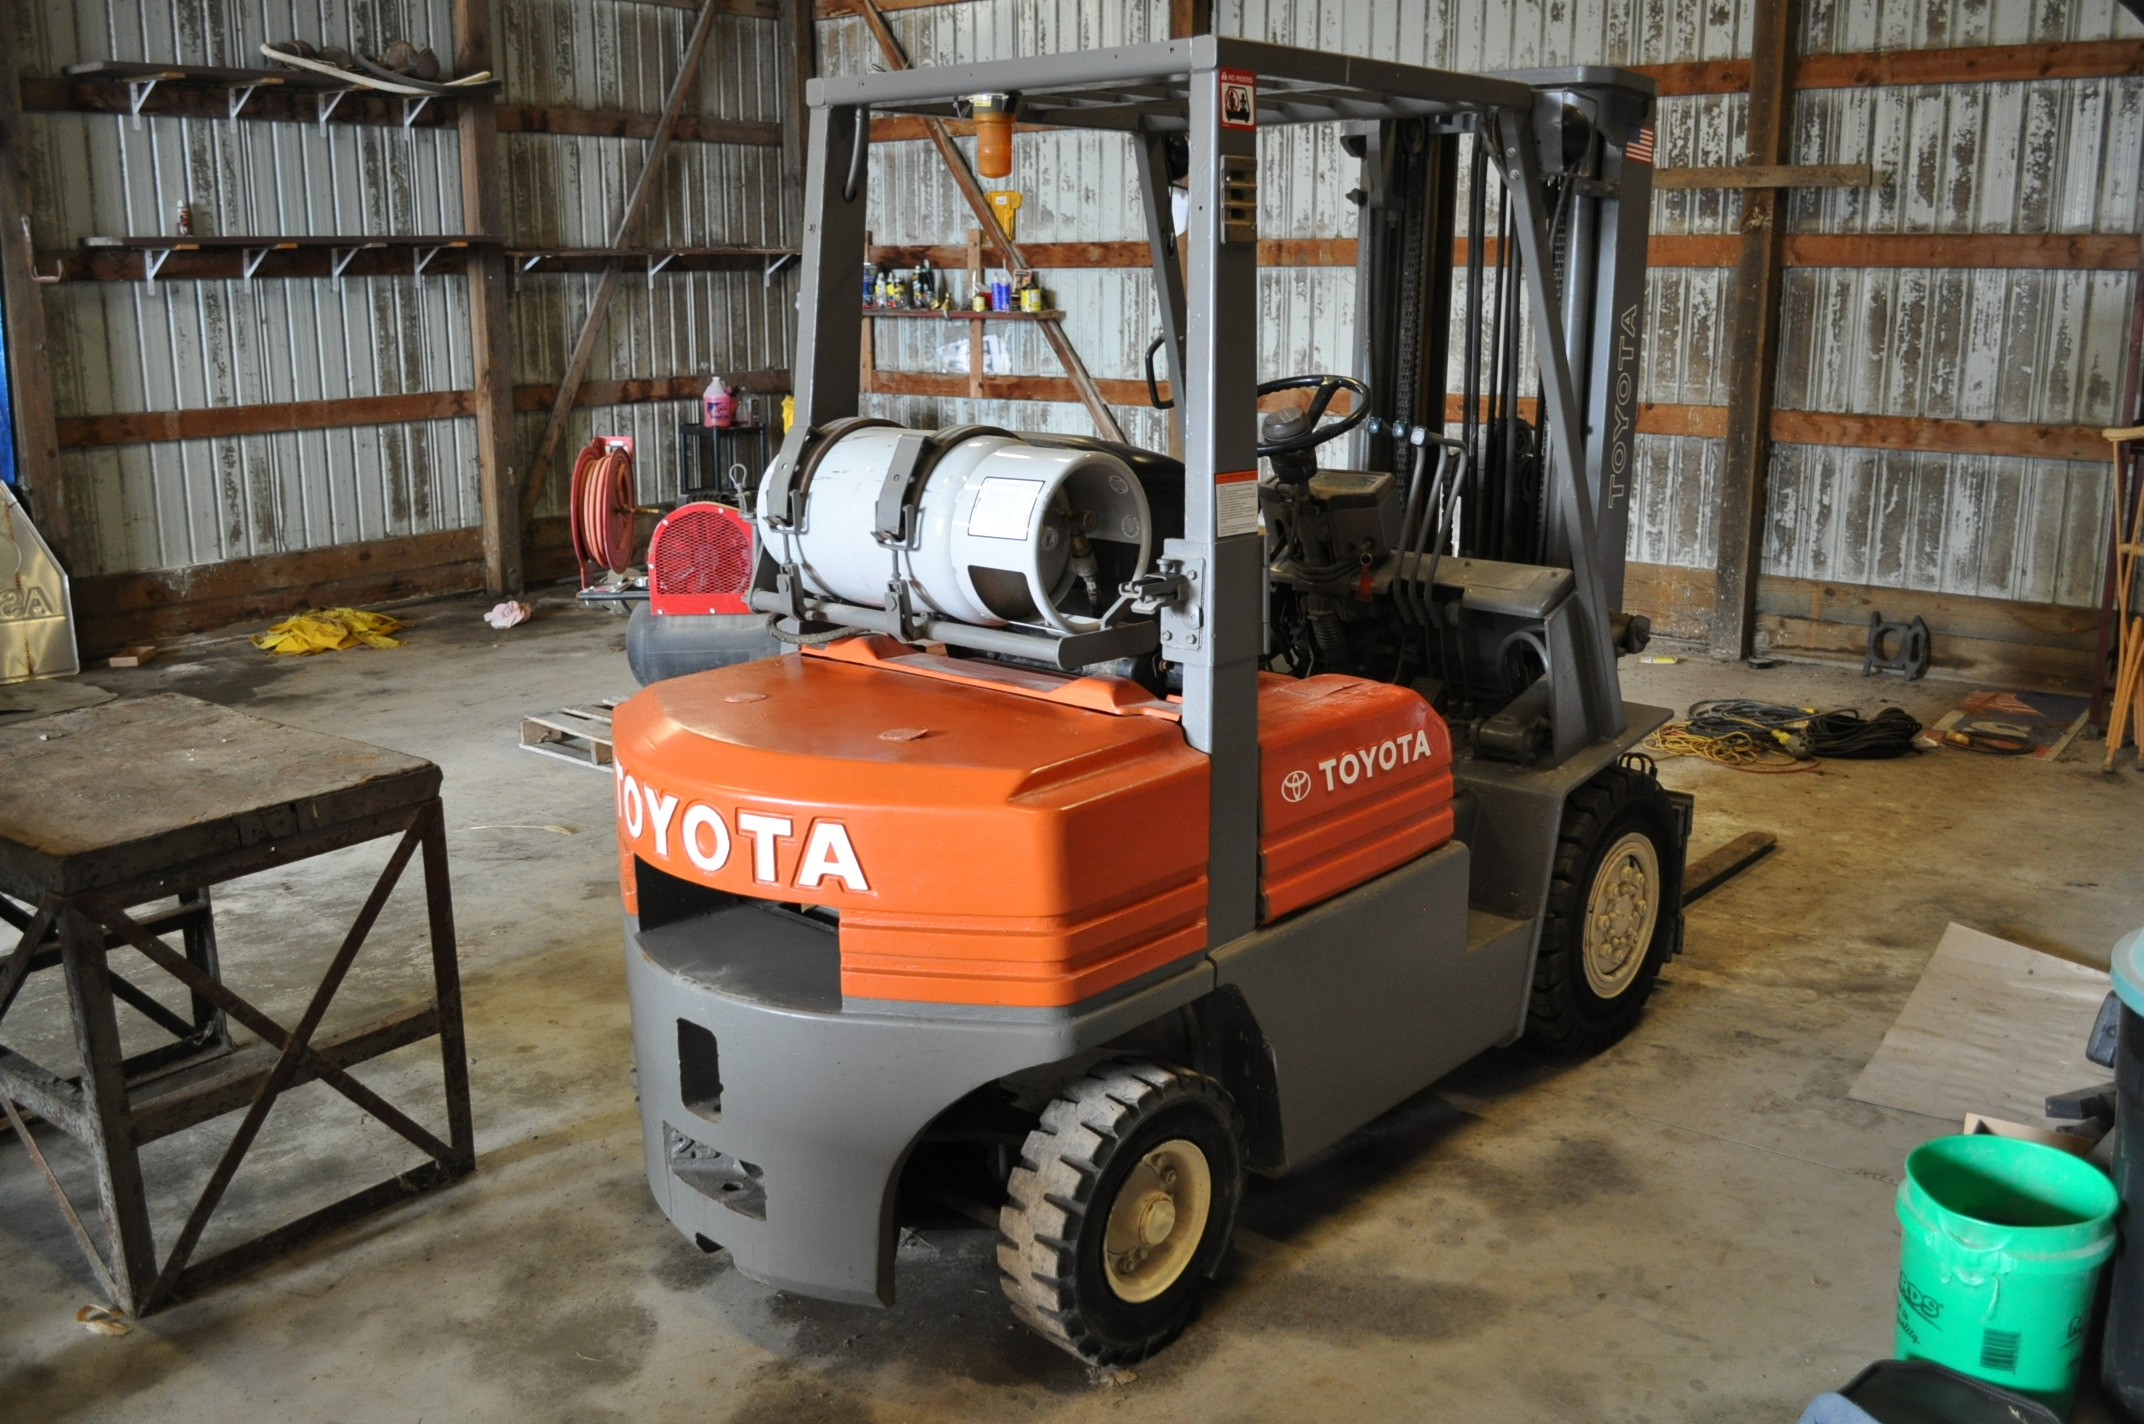 "Toyota 5 FG 10-30 forklift, 3 stage lift, 48"" forks side shift, LP, solid pneumatic, 10,520 hrs - Image 3 of 11"